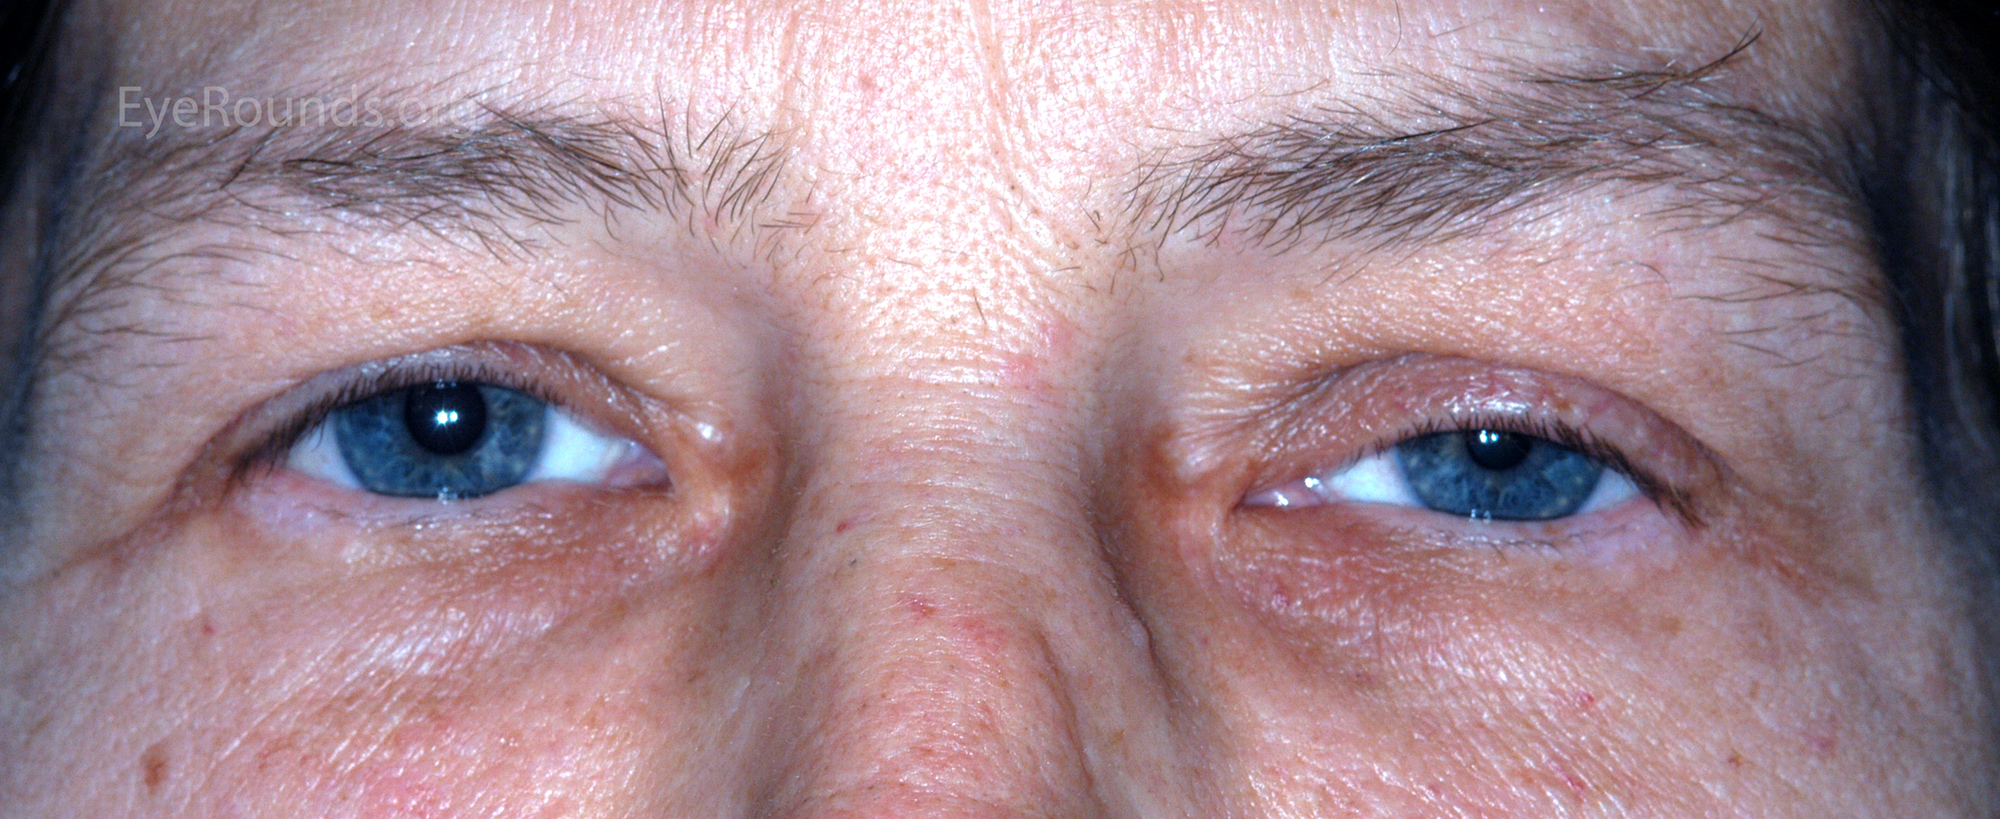 Mild ptosis and miosis of the left eye.